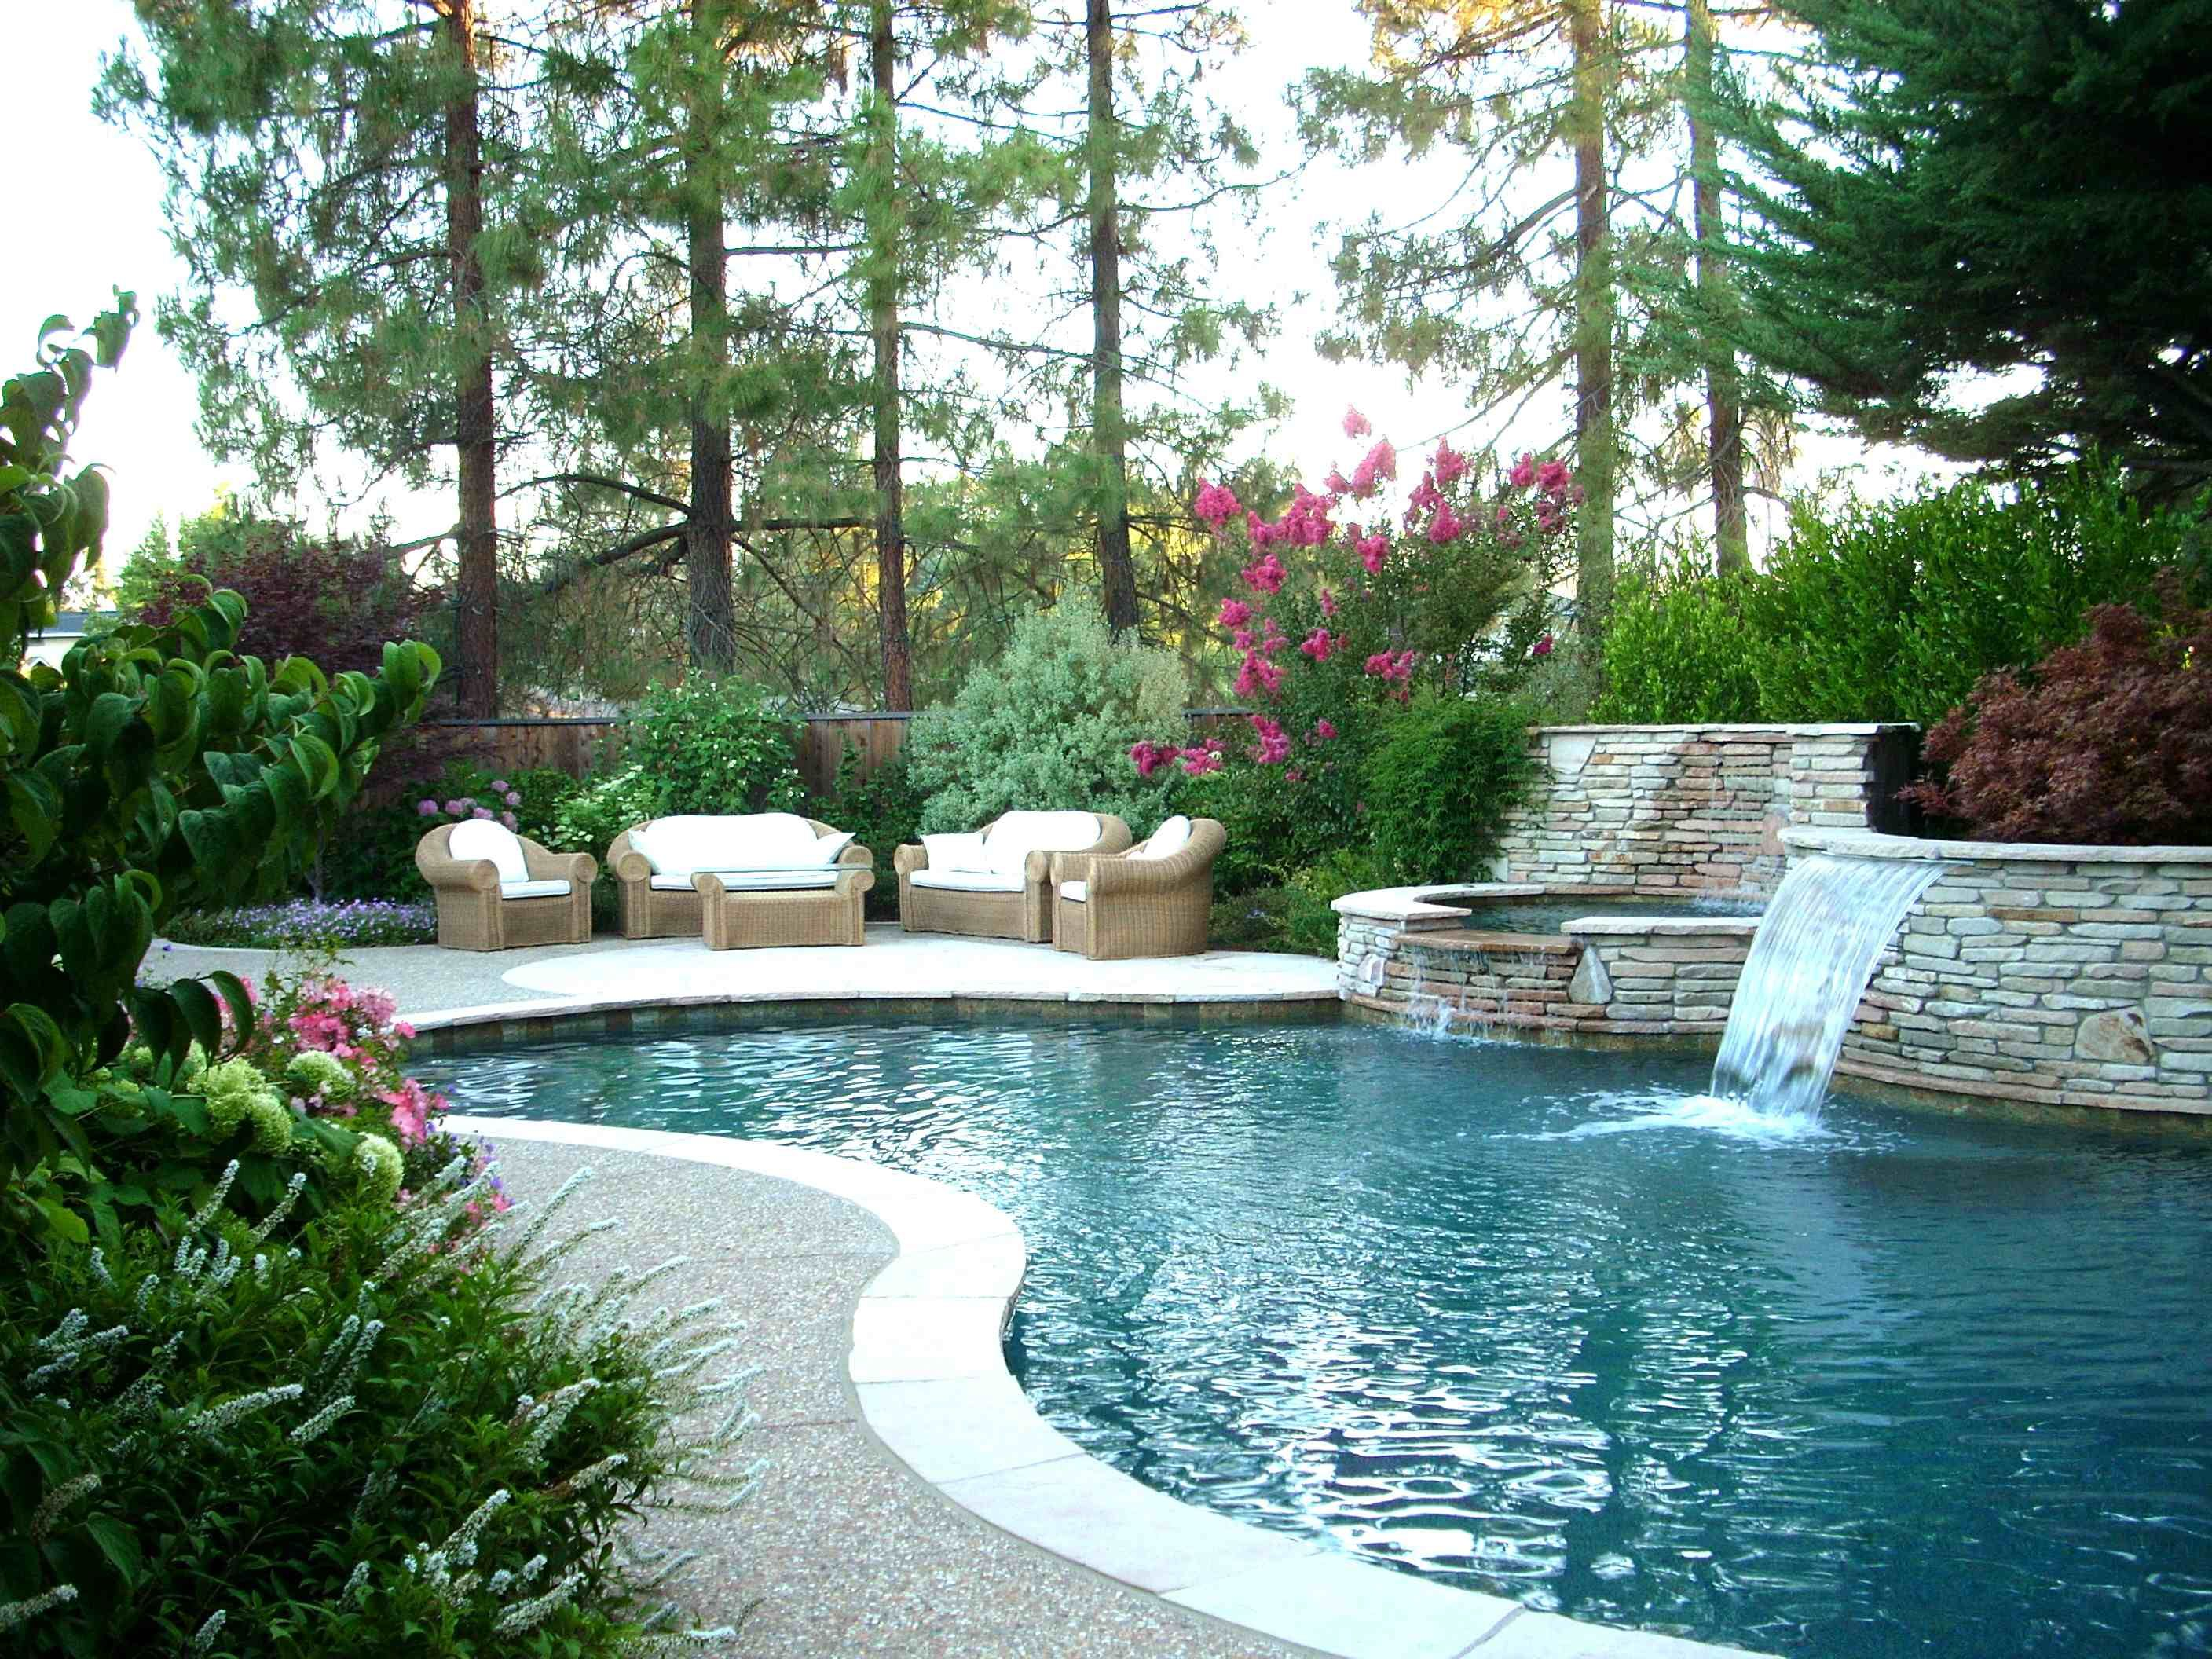 Landscaped pool pictures landscape design ideas for backyard gardens in danville pleasanton - Landscape and pool design ...